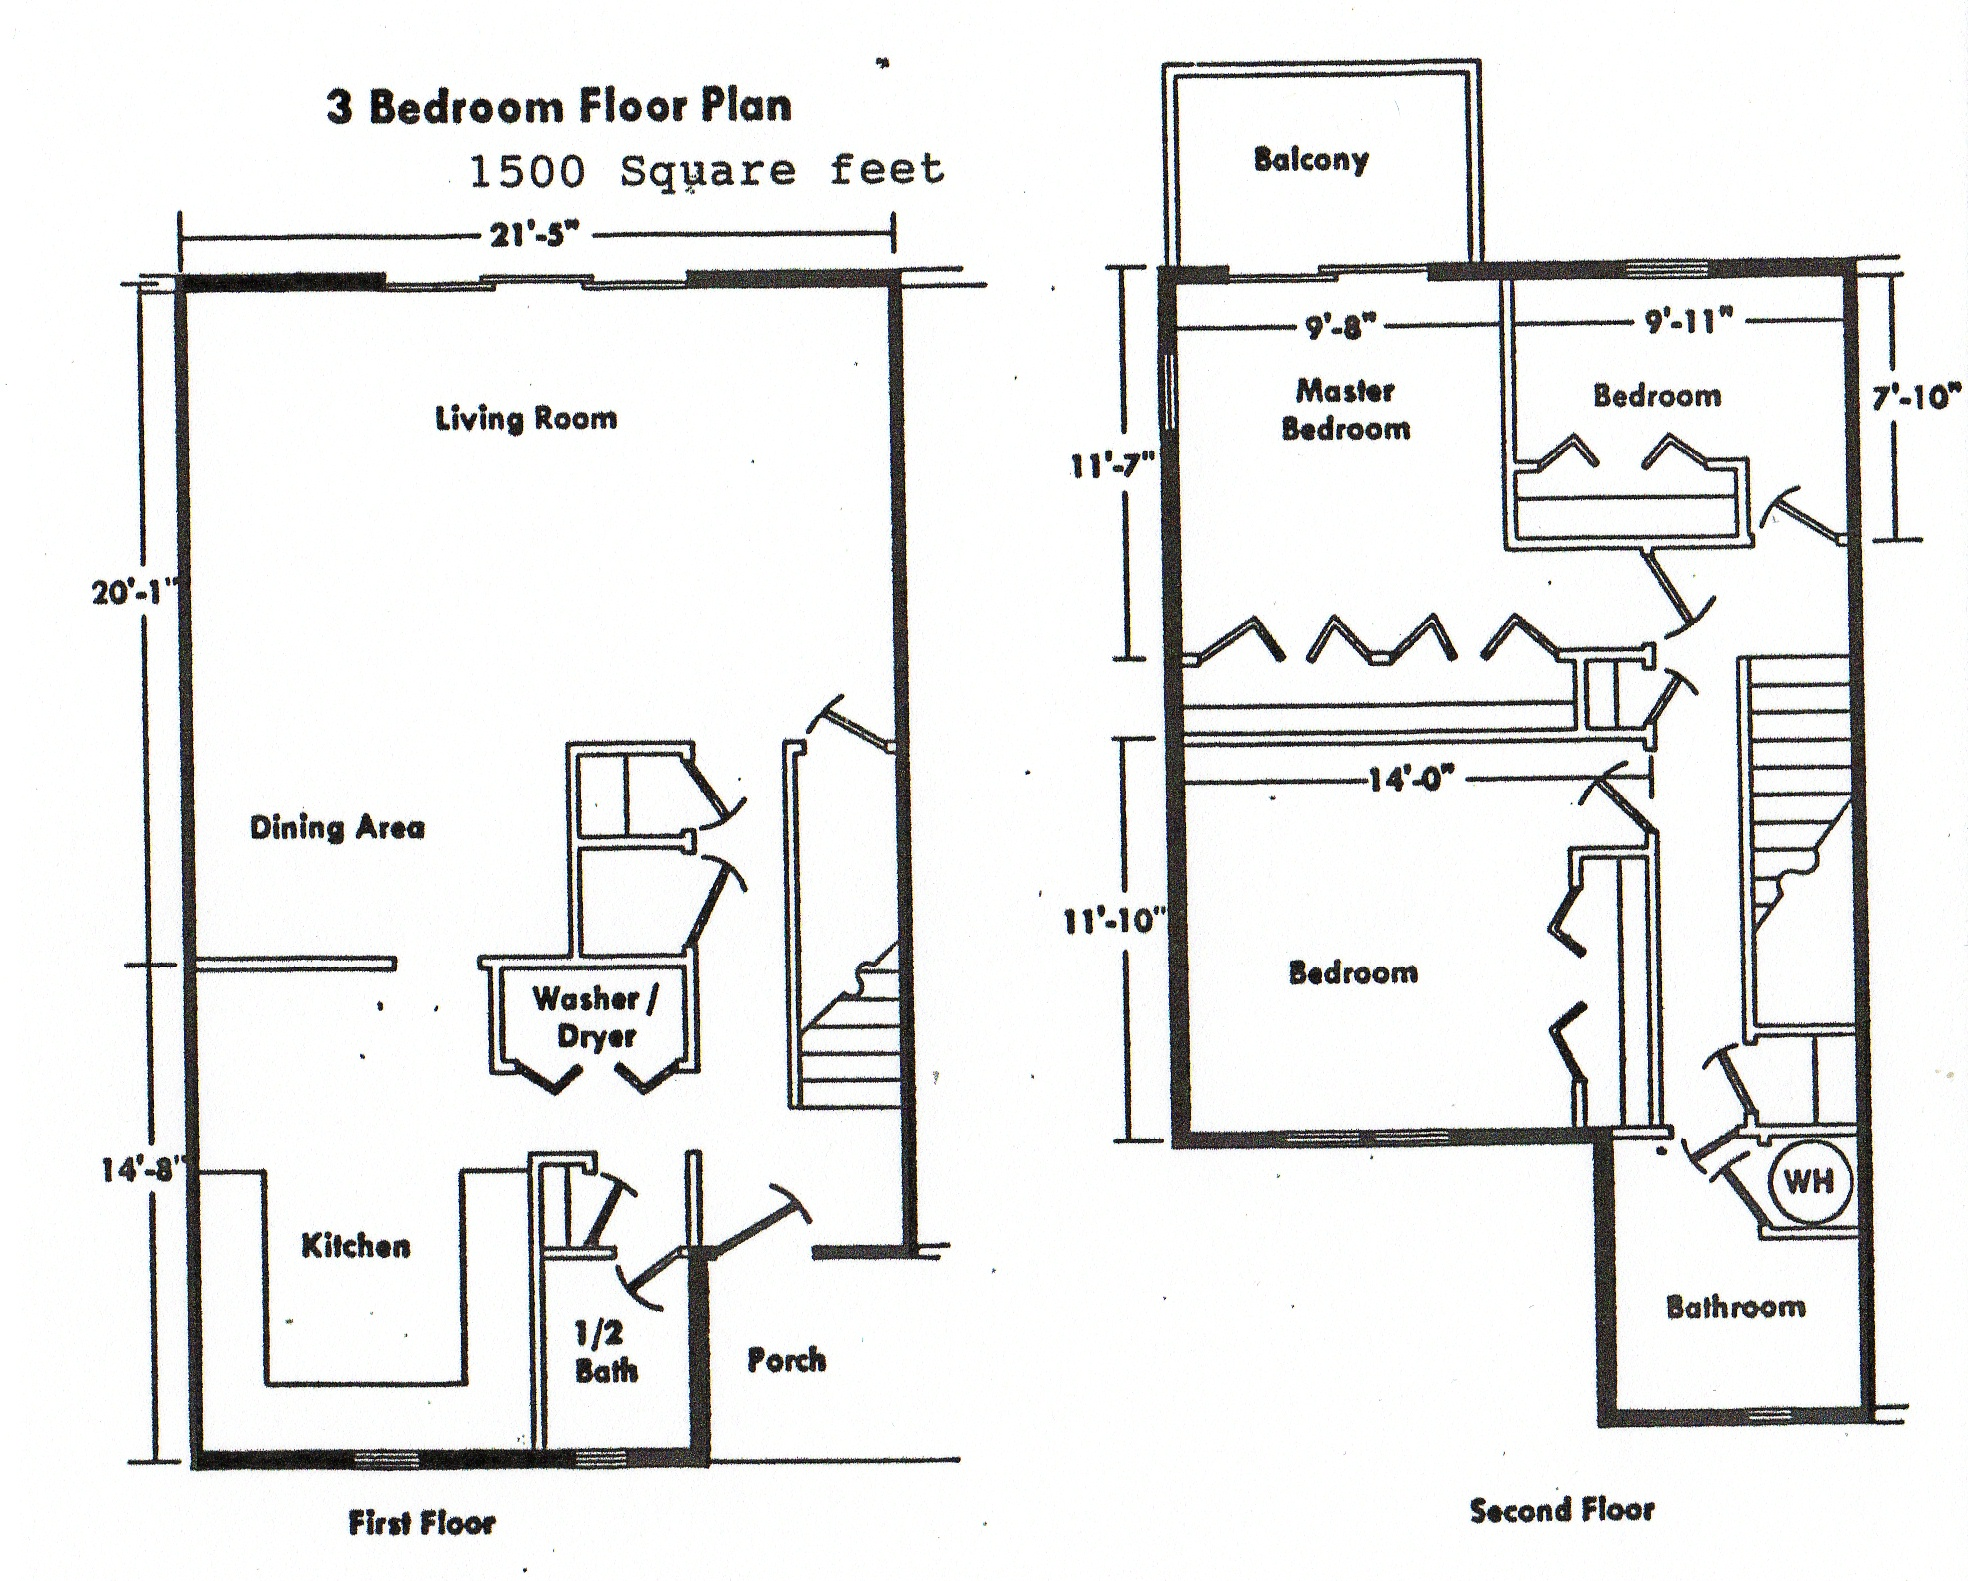 3 bedroom floor plans 1 2 and 3 bedroom floor plans for 3 bedroom house plans